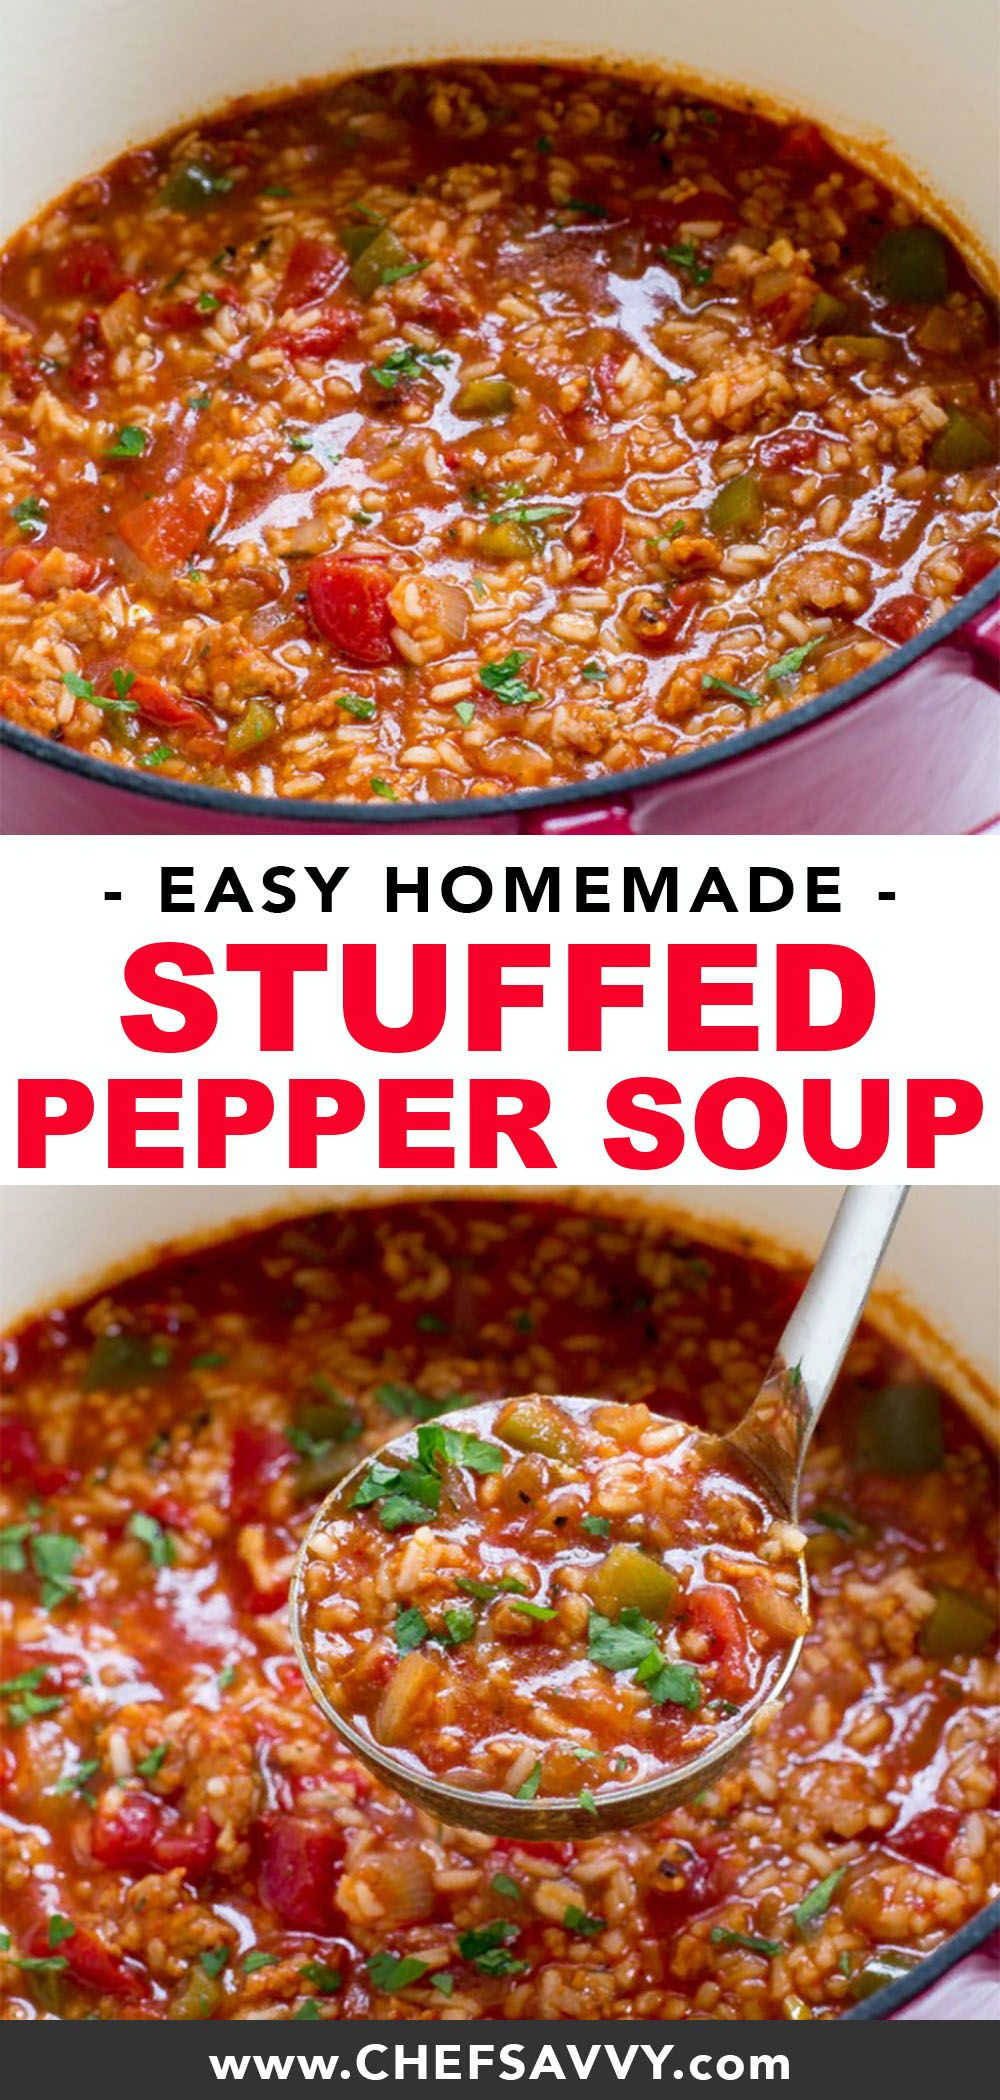 Easy Stuffed Pepper Soup Recipe One Pot Chef Savvy Recipe Dinner Recipes Crockpot Stuffed Peppers Easy Stuffed Peppers